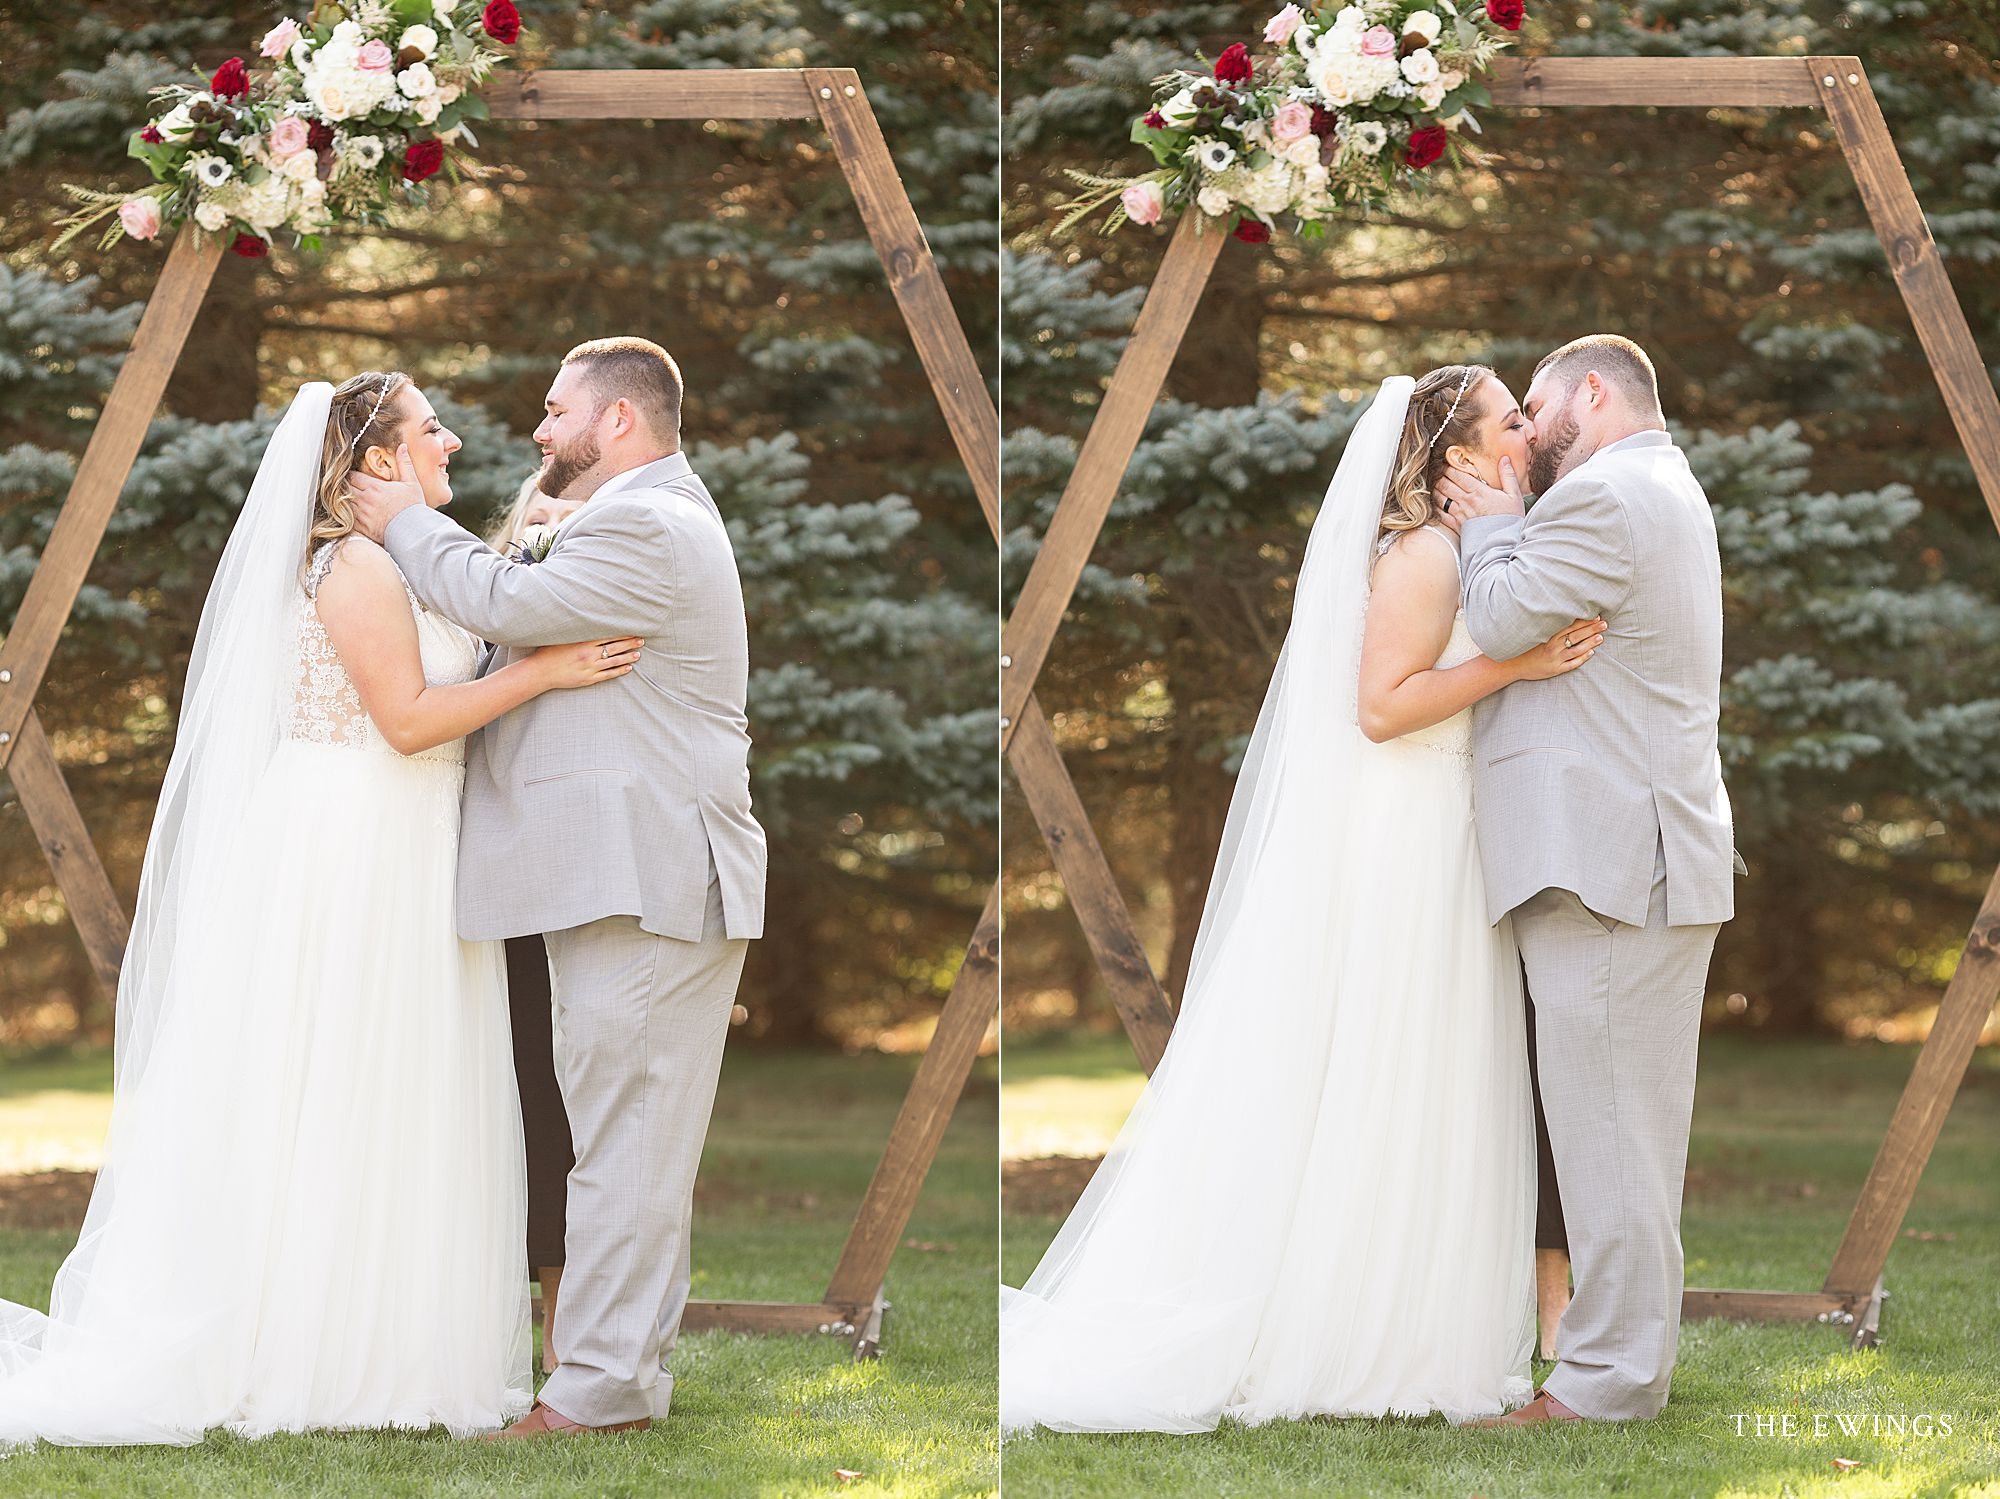 A bride and groom married in a backyard wedding with an octagon arbor for the ceremonyy